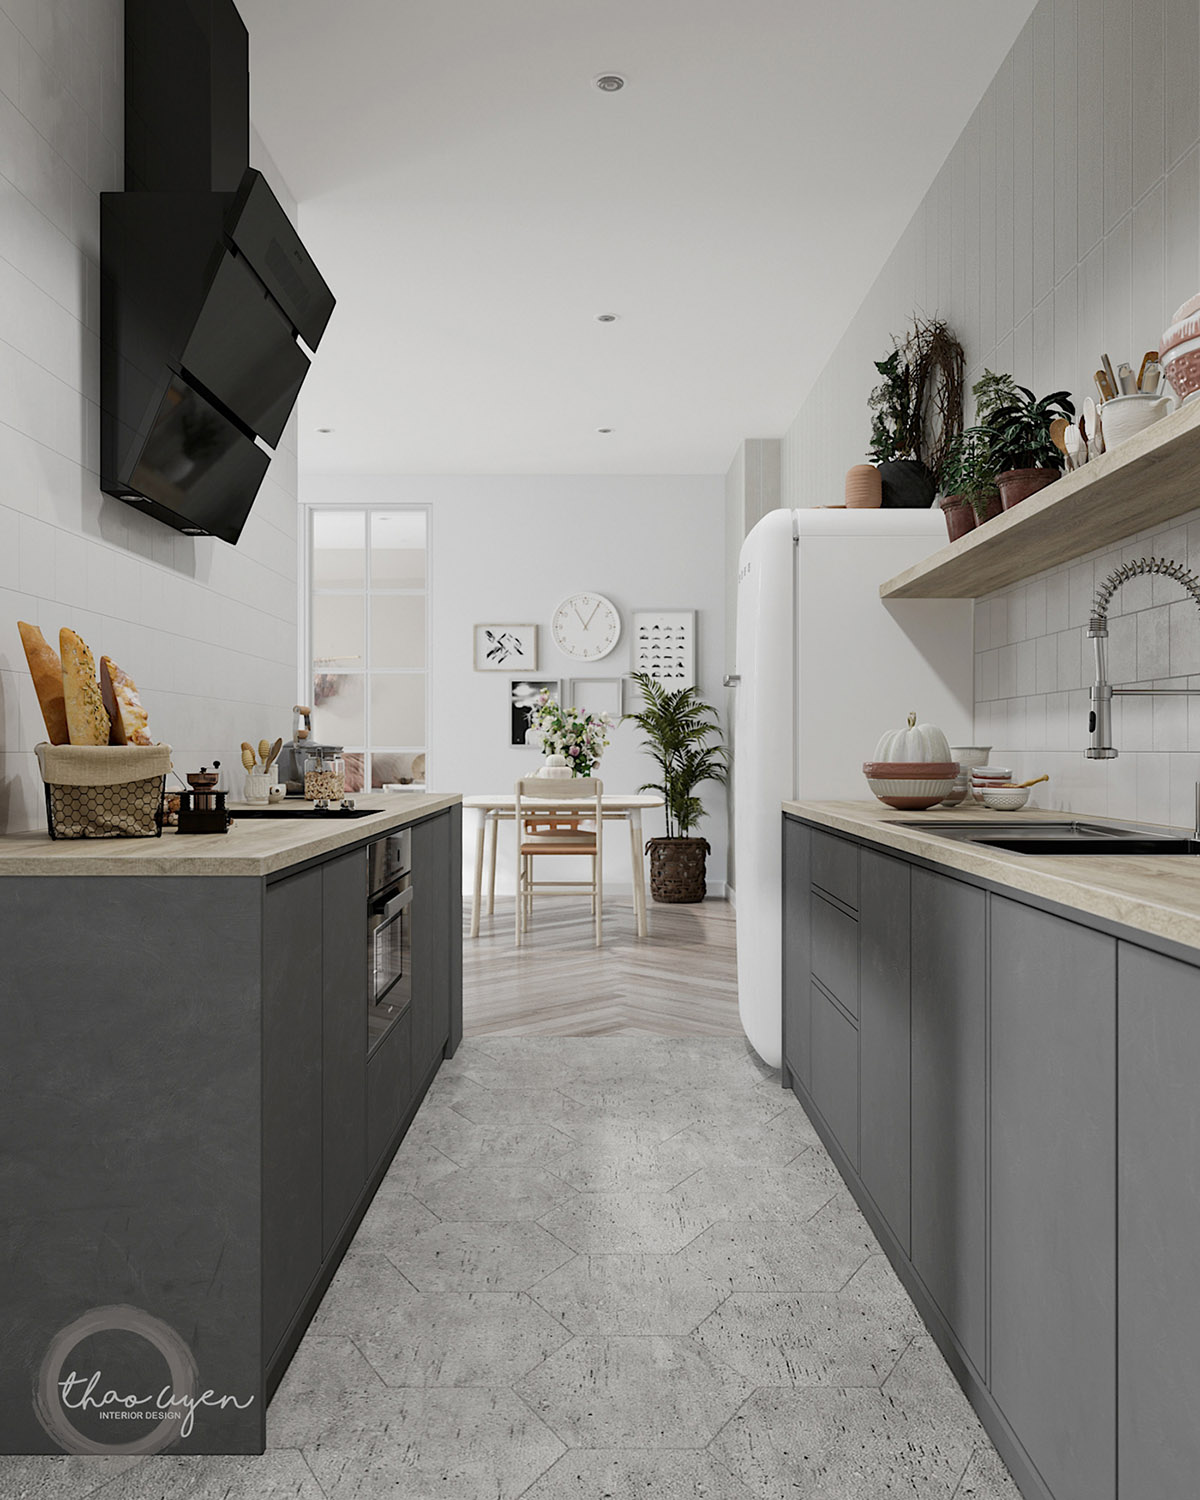 Gray Galley Kitchen: 3 Homes That Show Off The Beauty In Simplicity Of Modern Scandinavian Design